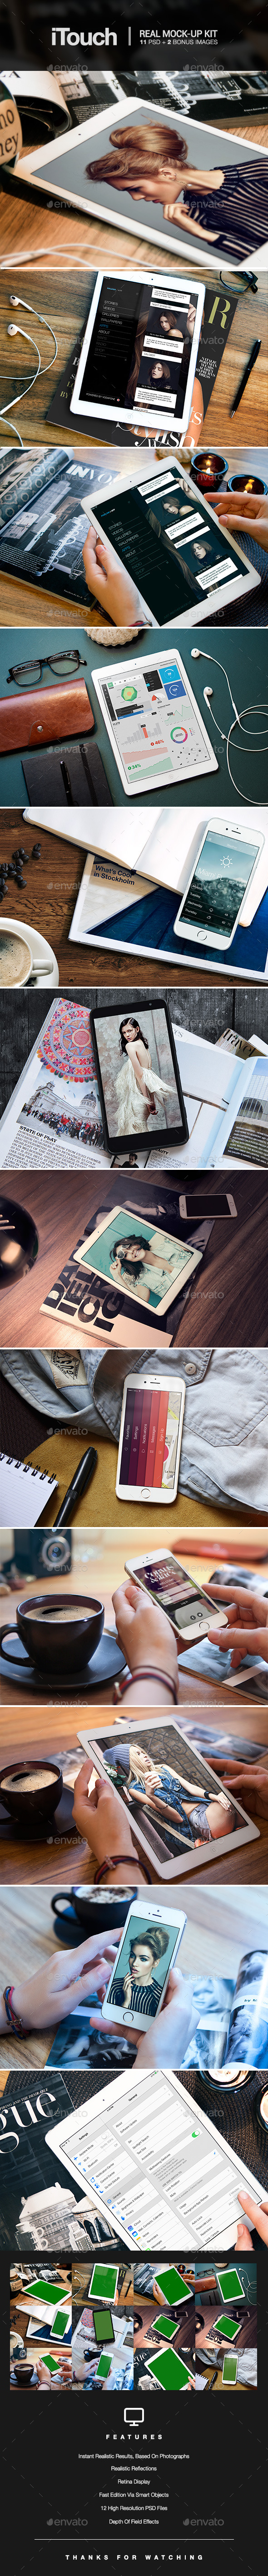 GraphicRiver iTouch 12 Photorealistic MockUp 9380424